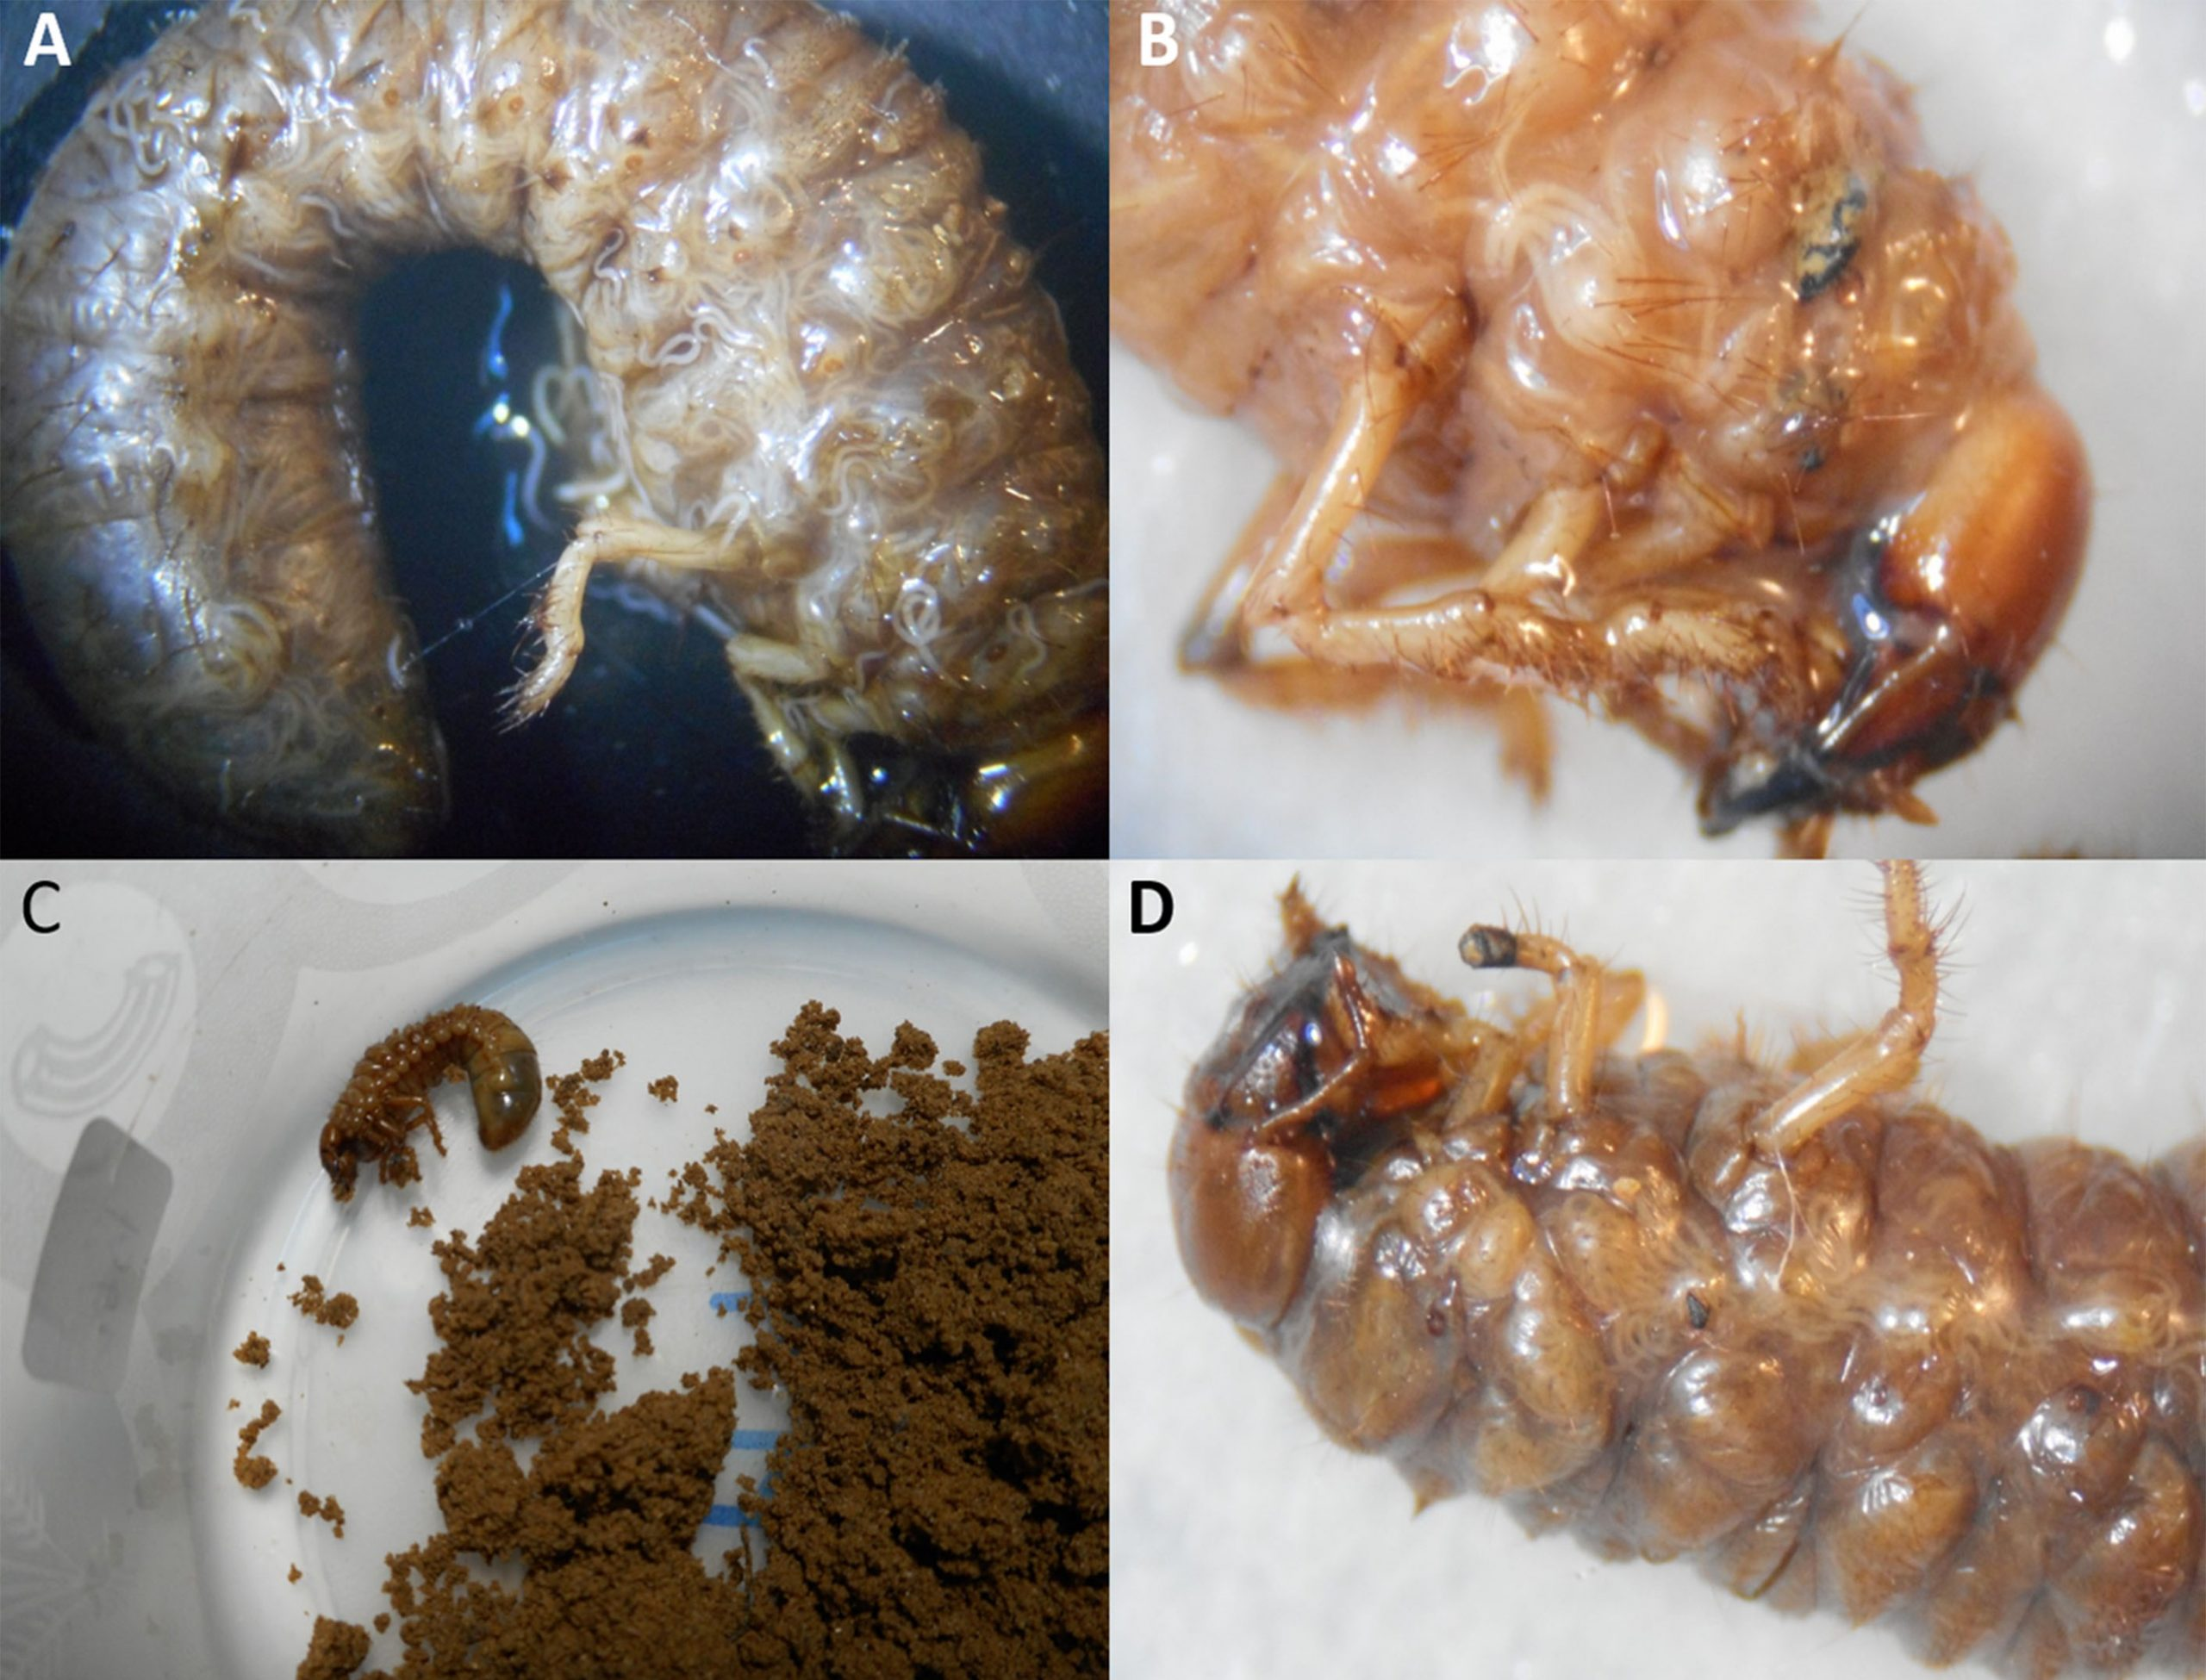 Entomopathogenic Nematodes to control White grubs